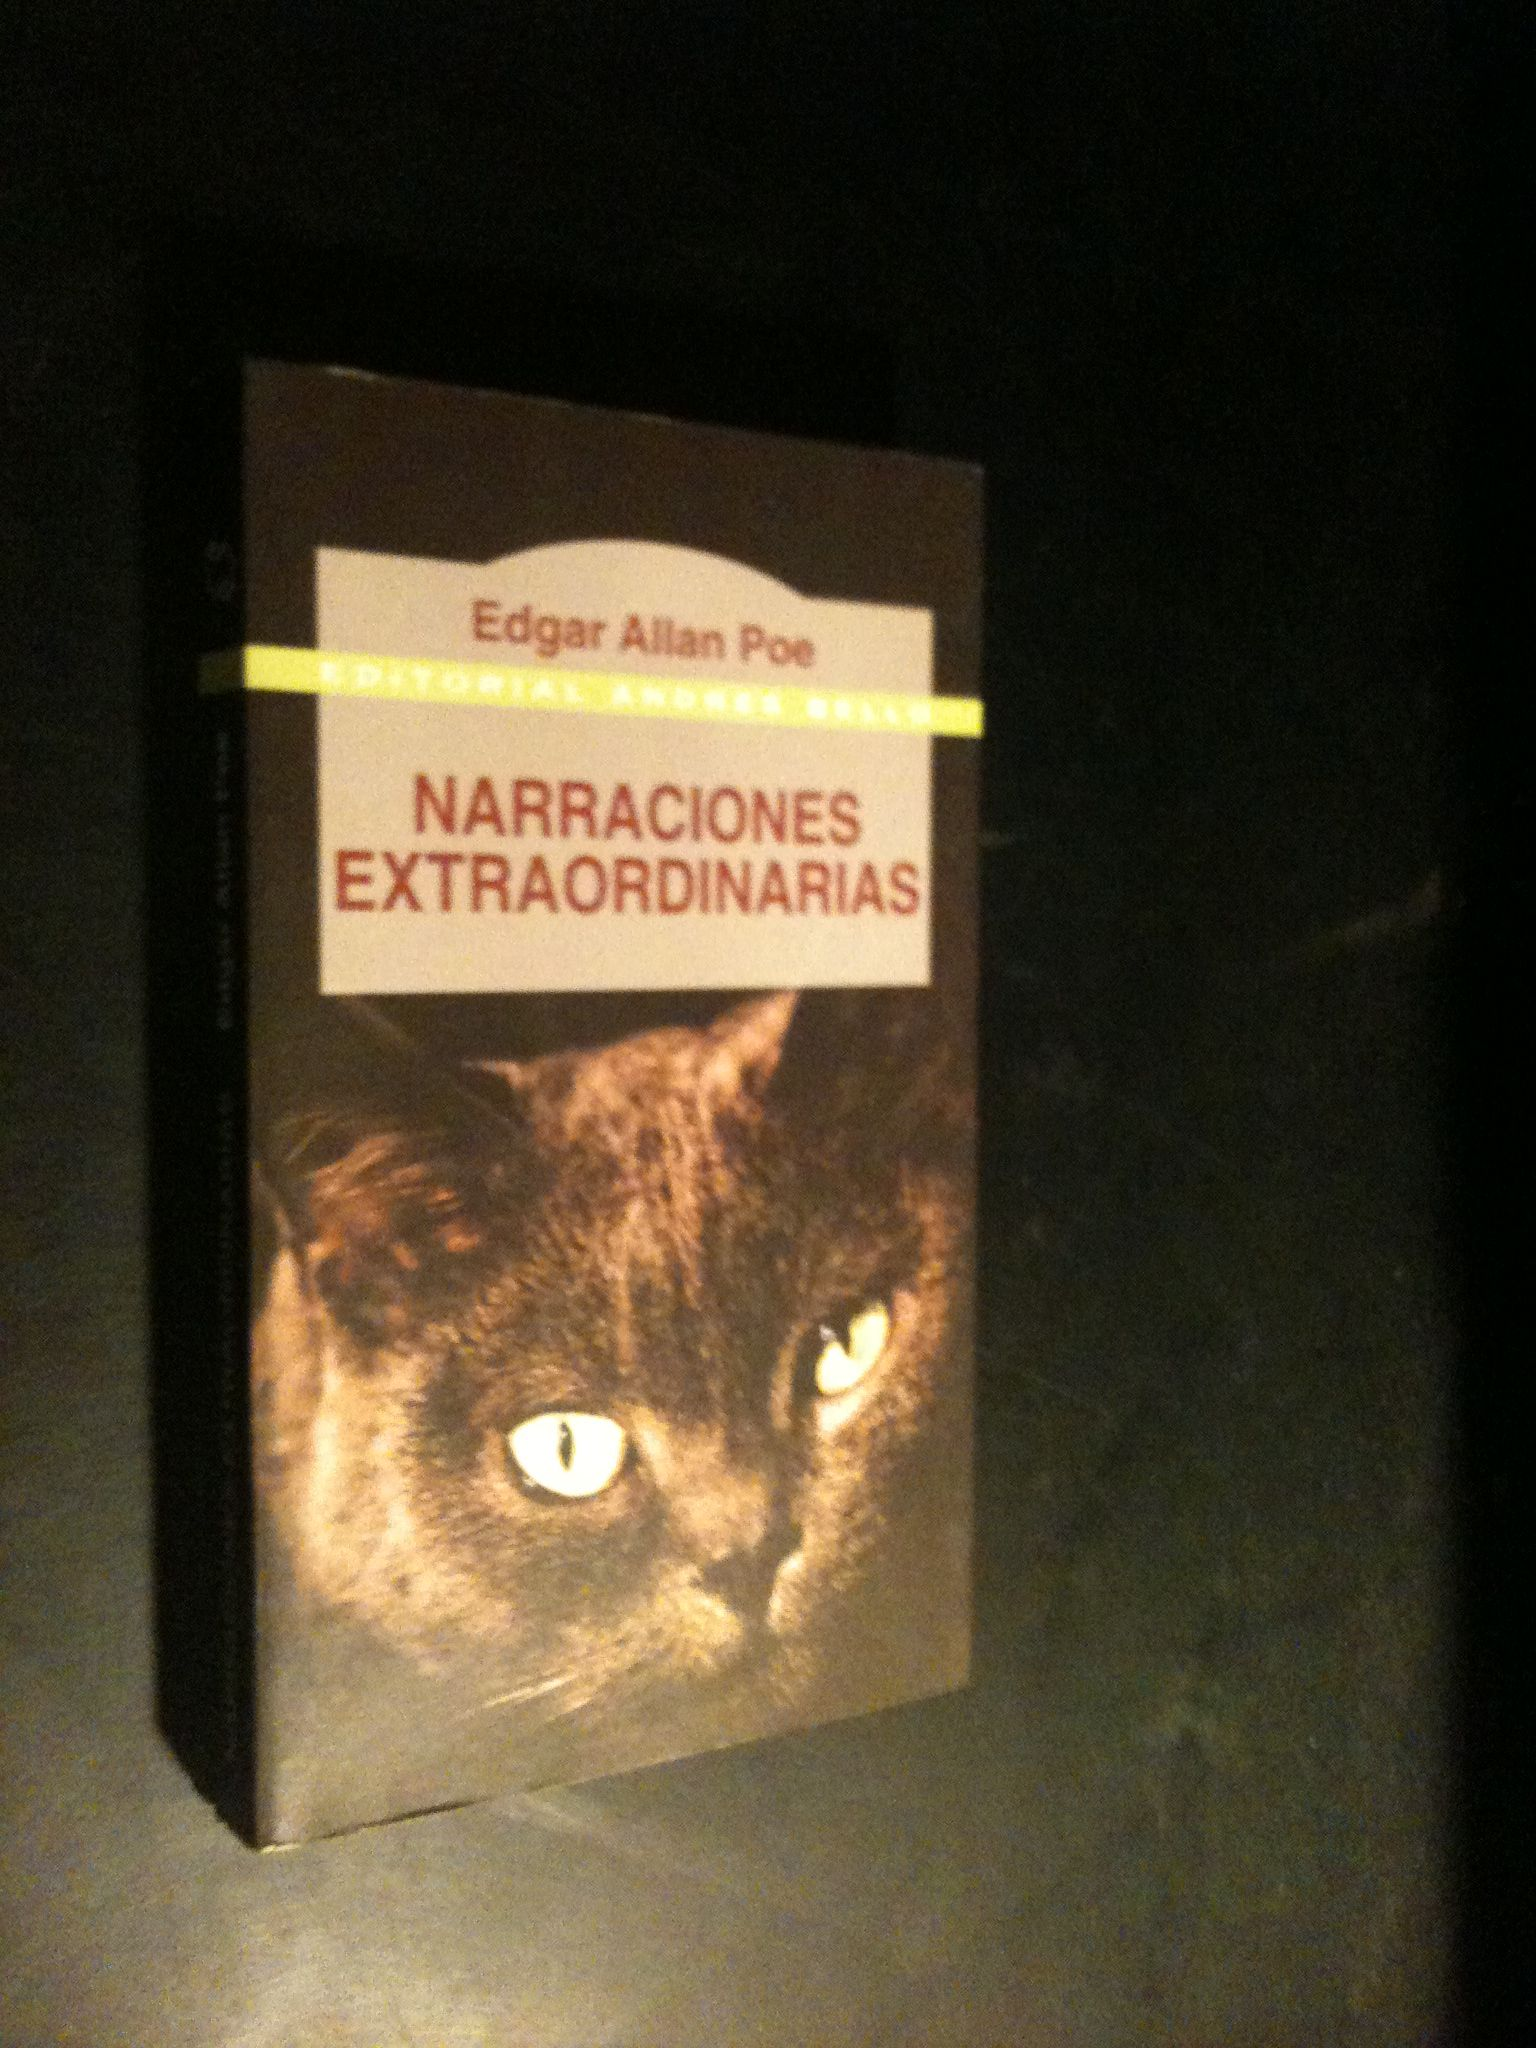 Poe,Edgar Allan Narraciones+Extraordinarias+/+Extraordinary+Stories BOOK